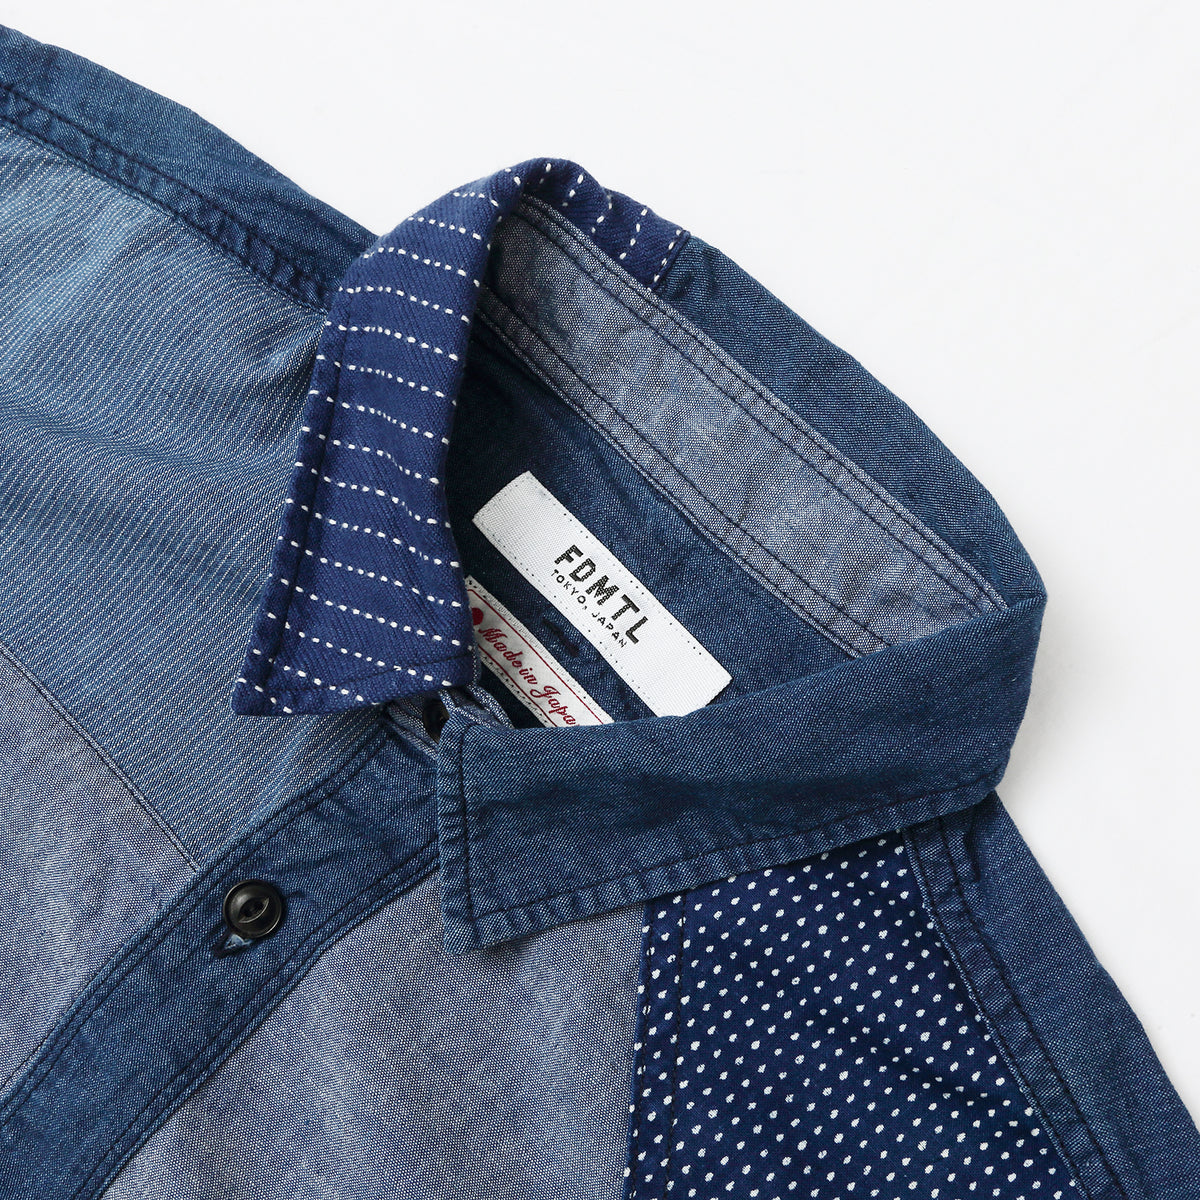 FDMTL - BORO INDIGO SHIRT - SOFT WASH